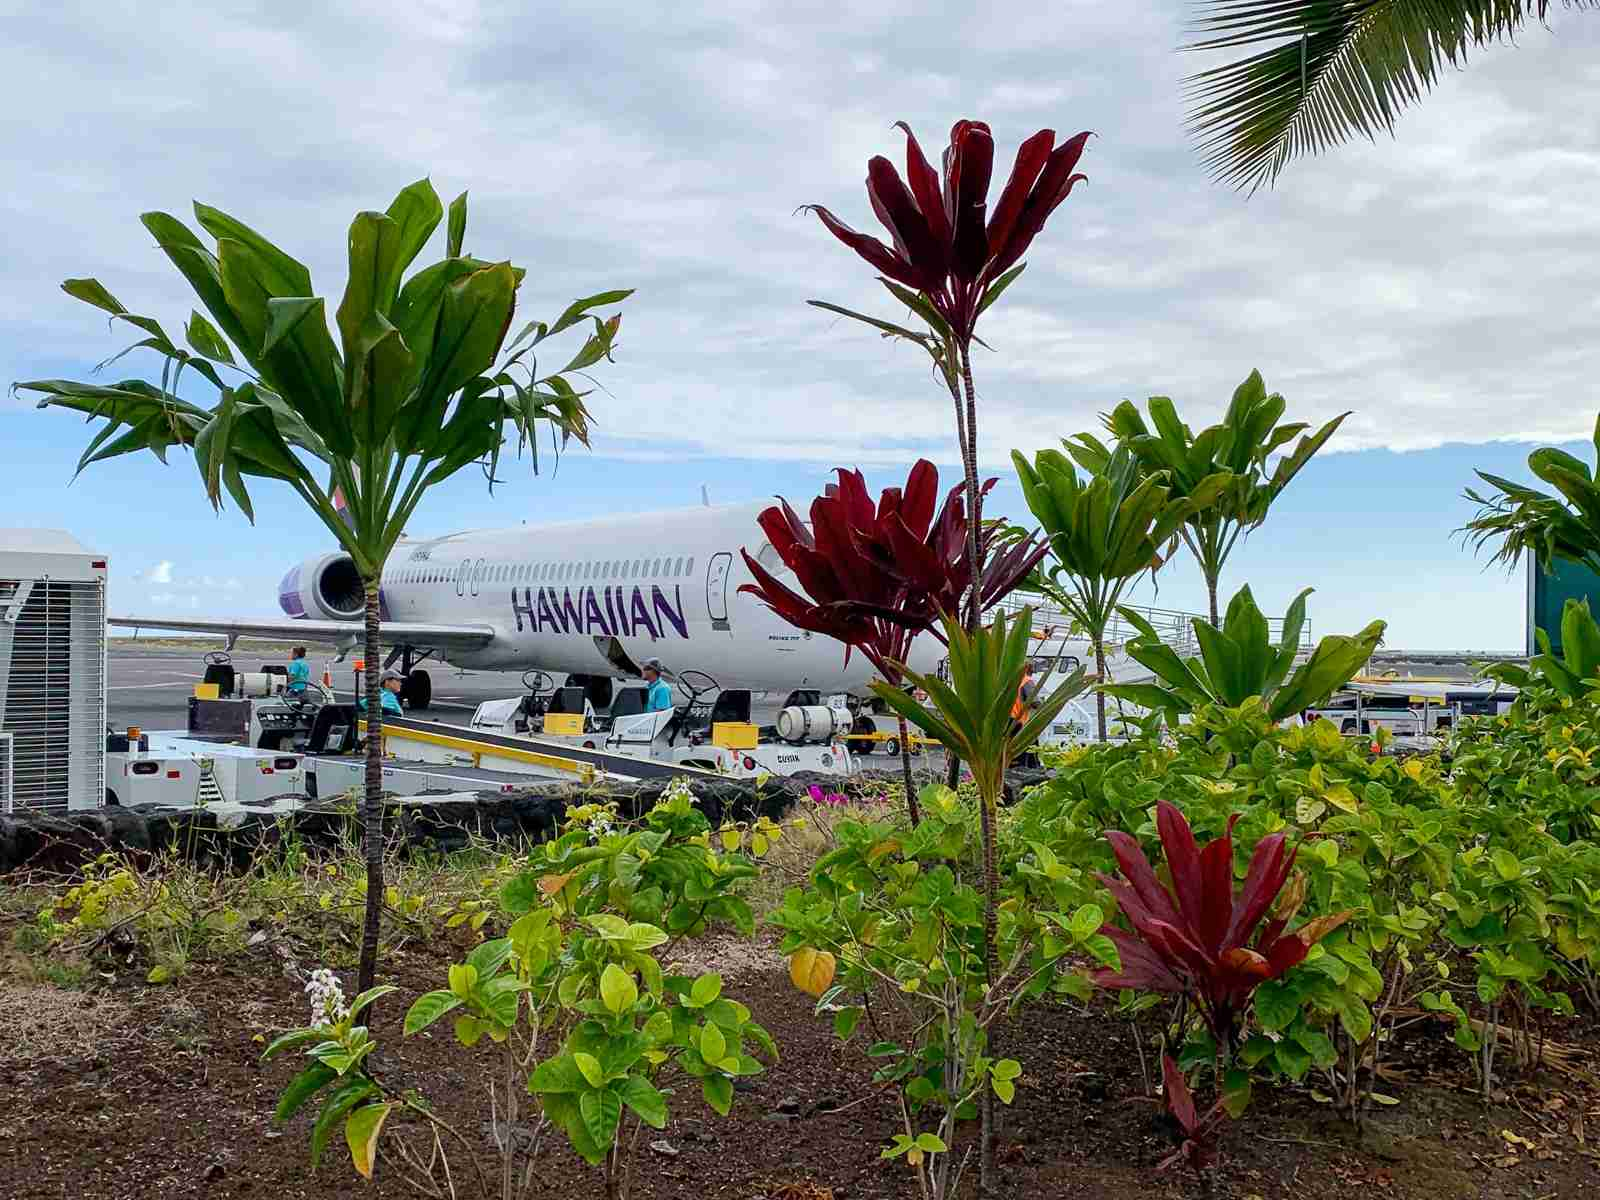 Hawaiian Airlines (Photo by Summer Hull/The Points Guy)